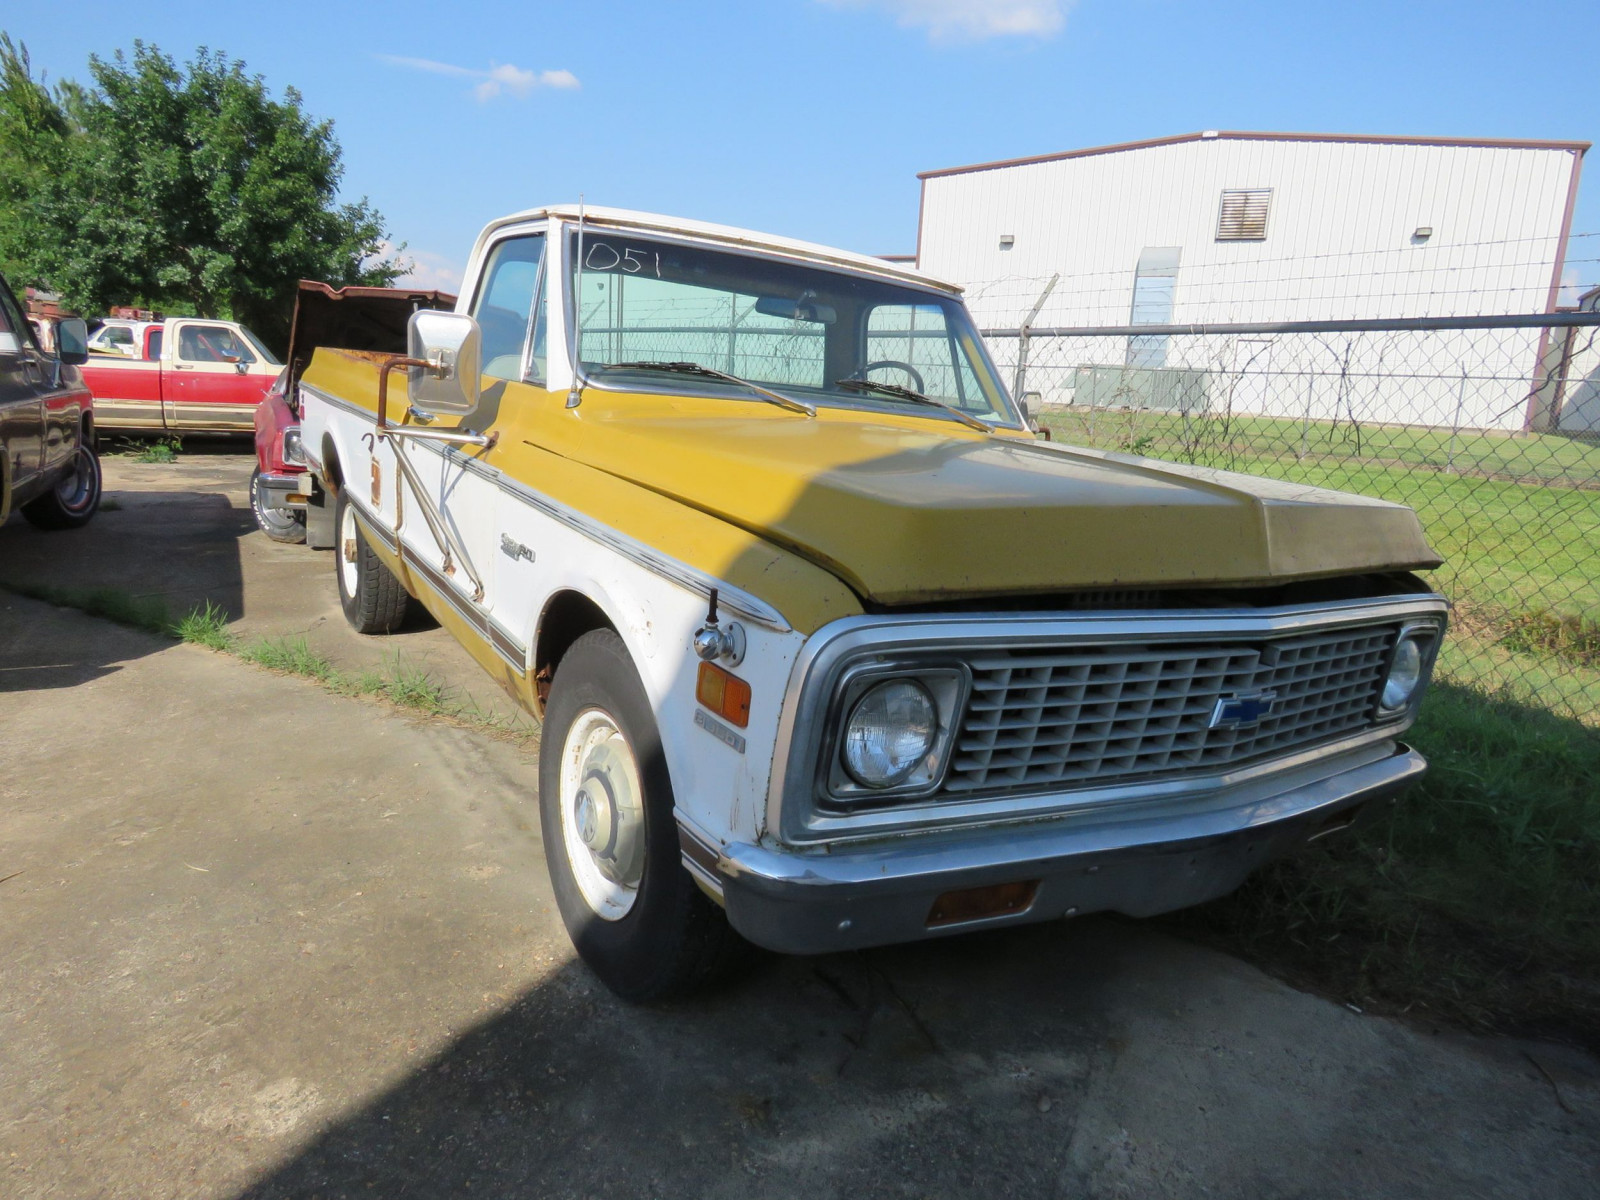 1972 Chevrolet Custom C20 Pickup - Image 1